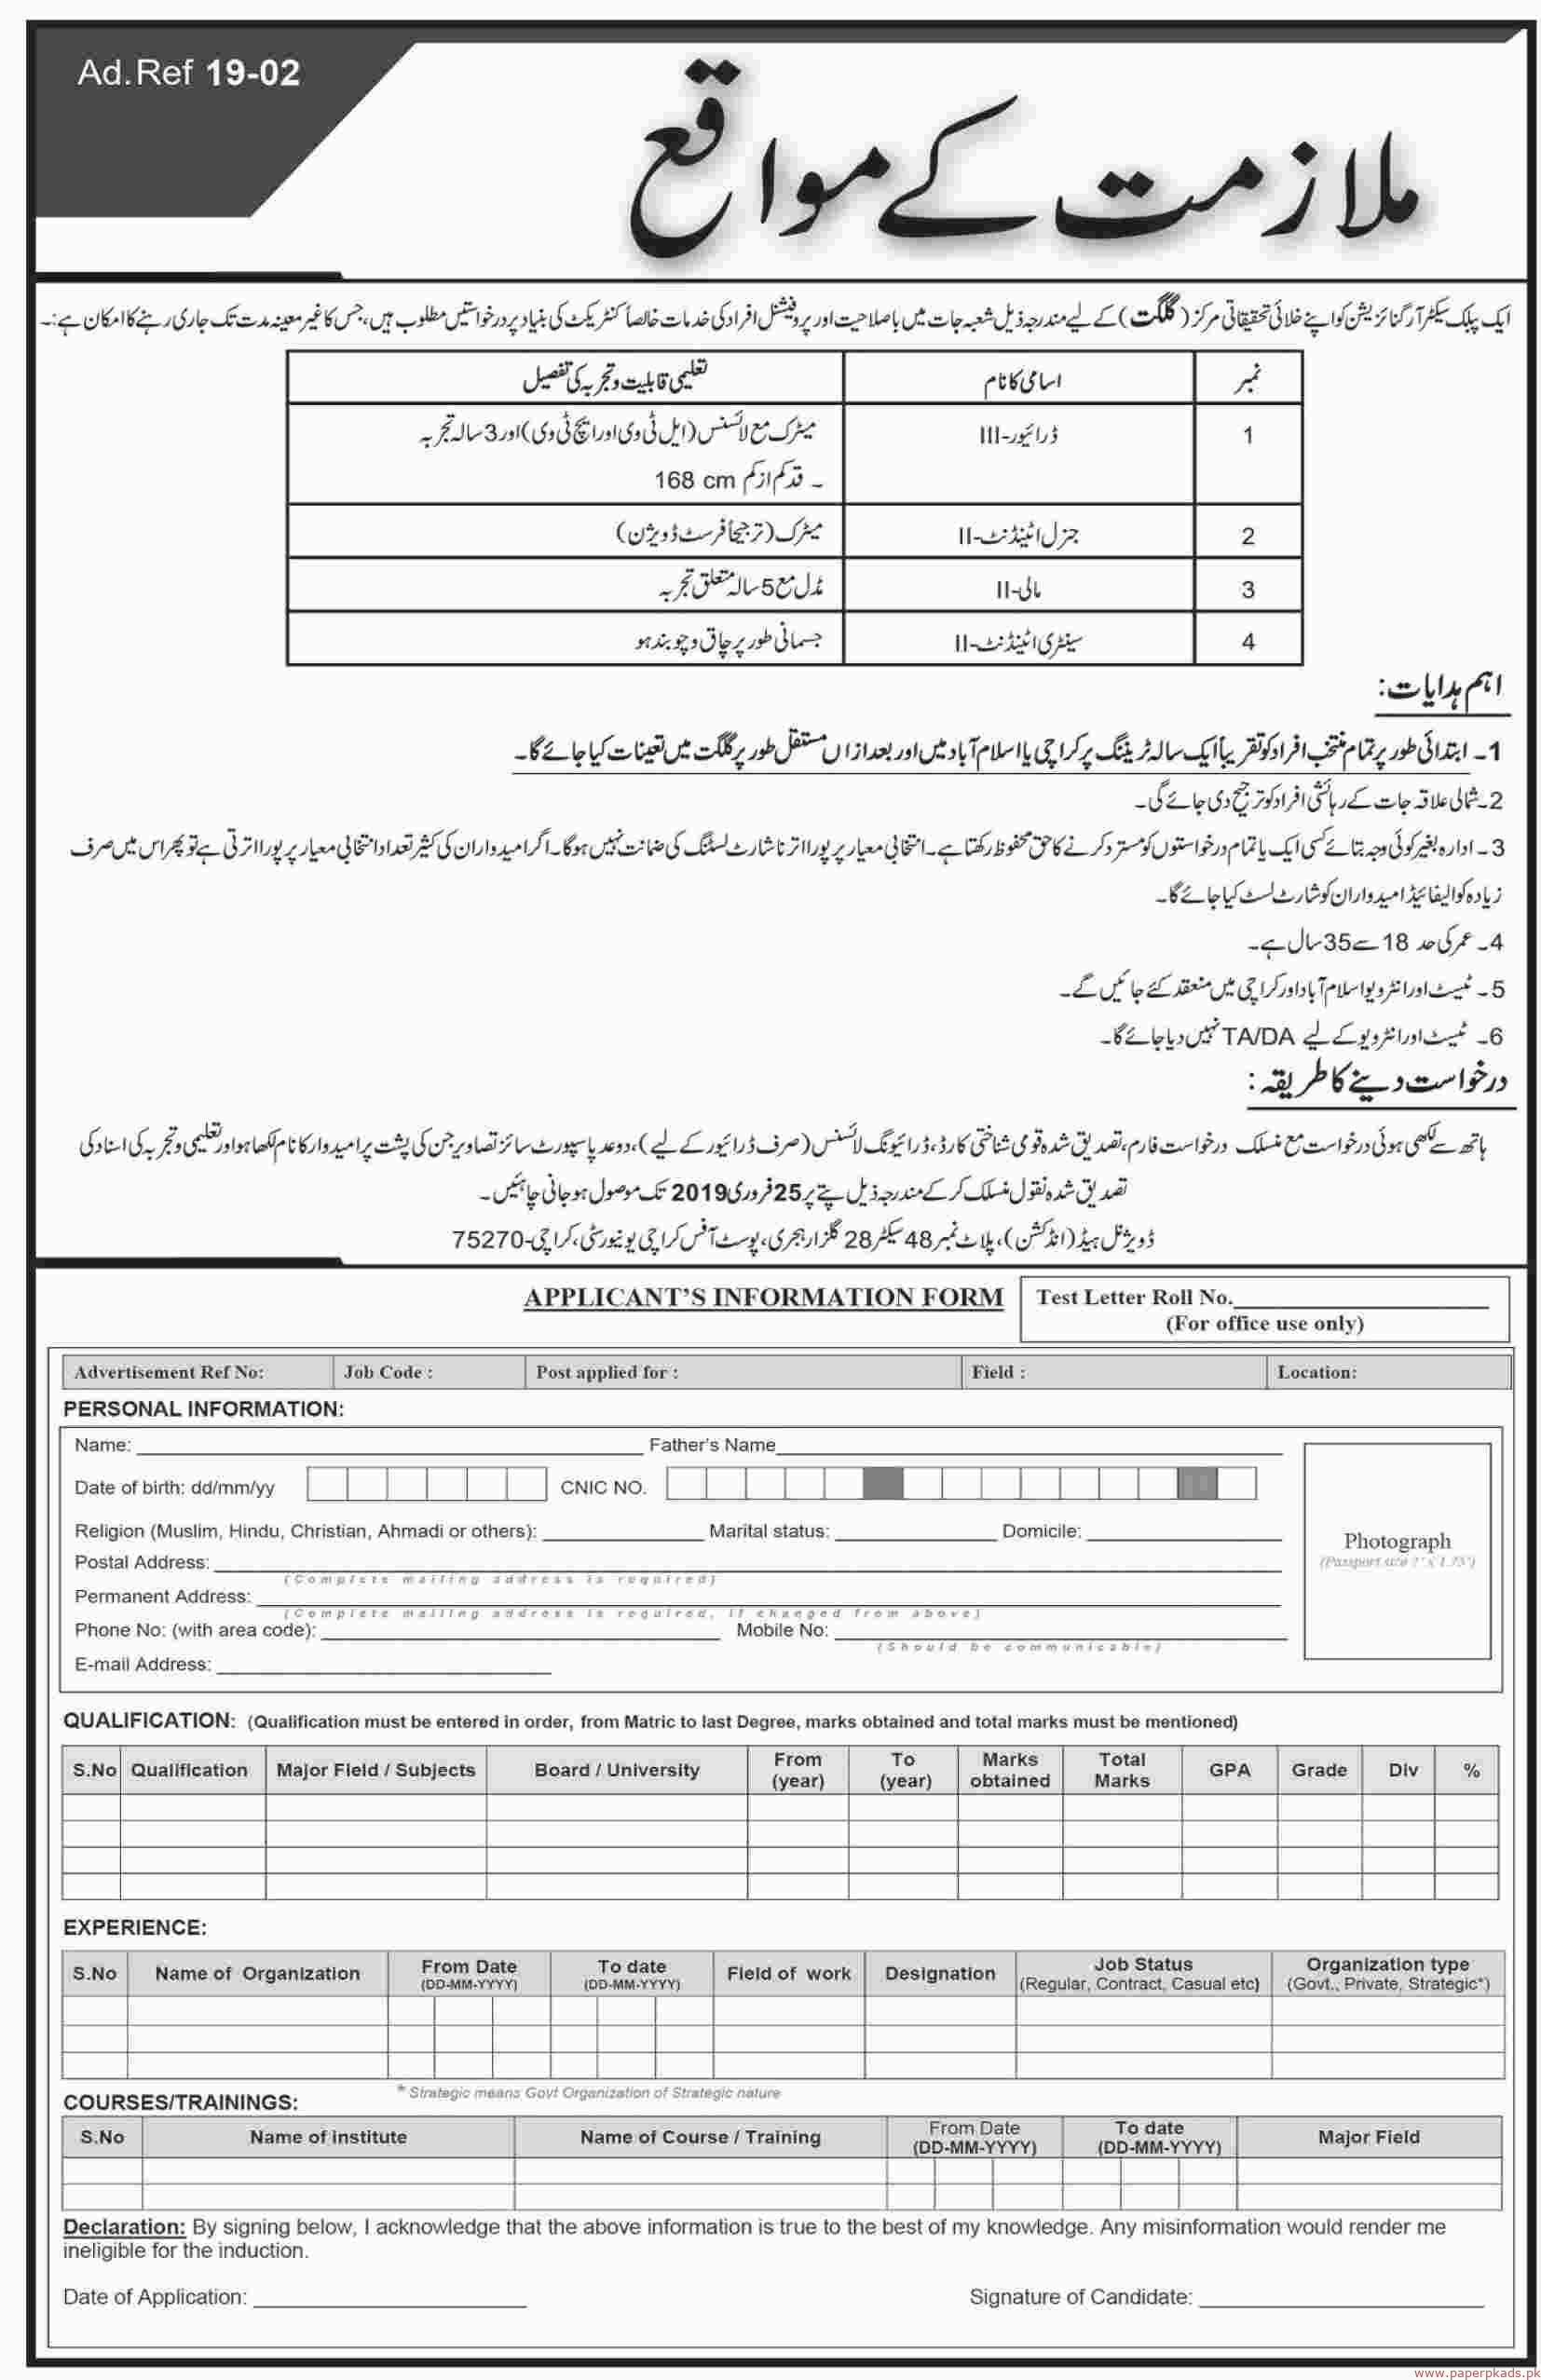 Public Sector Organization Ad Ref 19-02 Jobs 2019 Latest